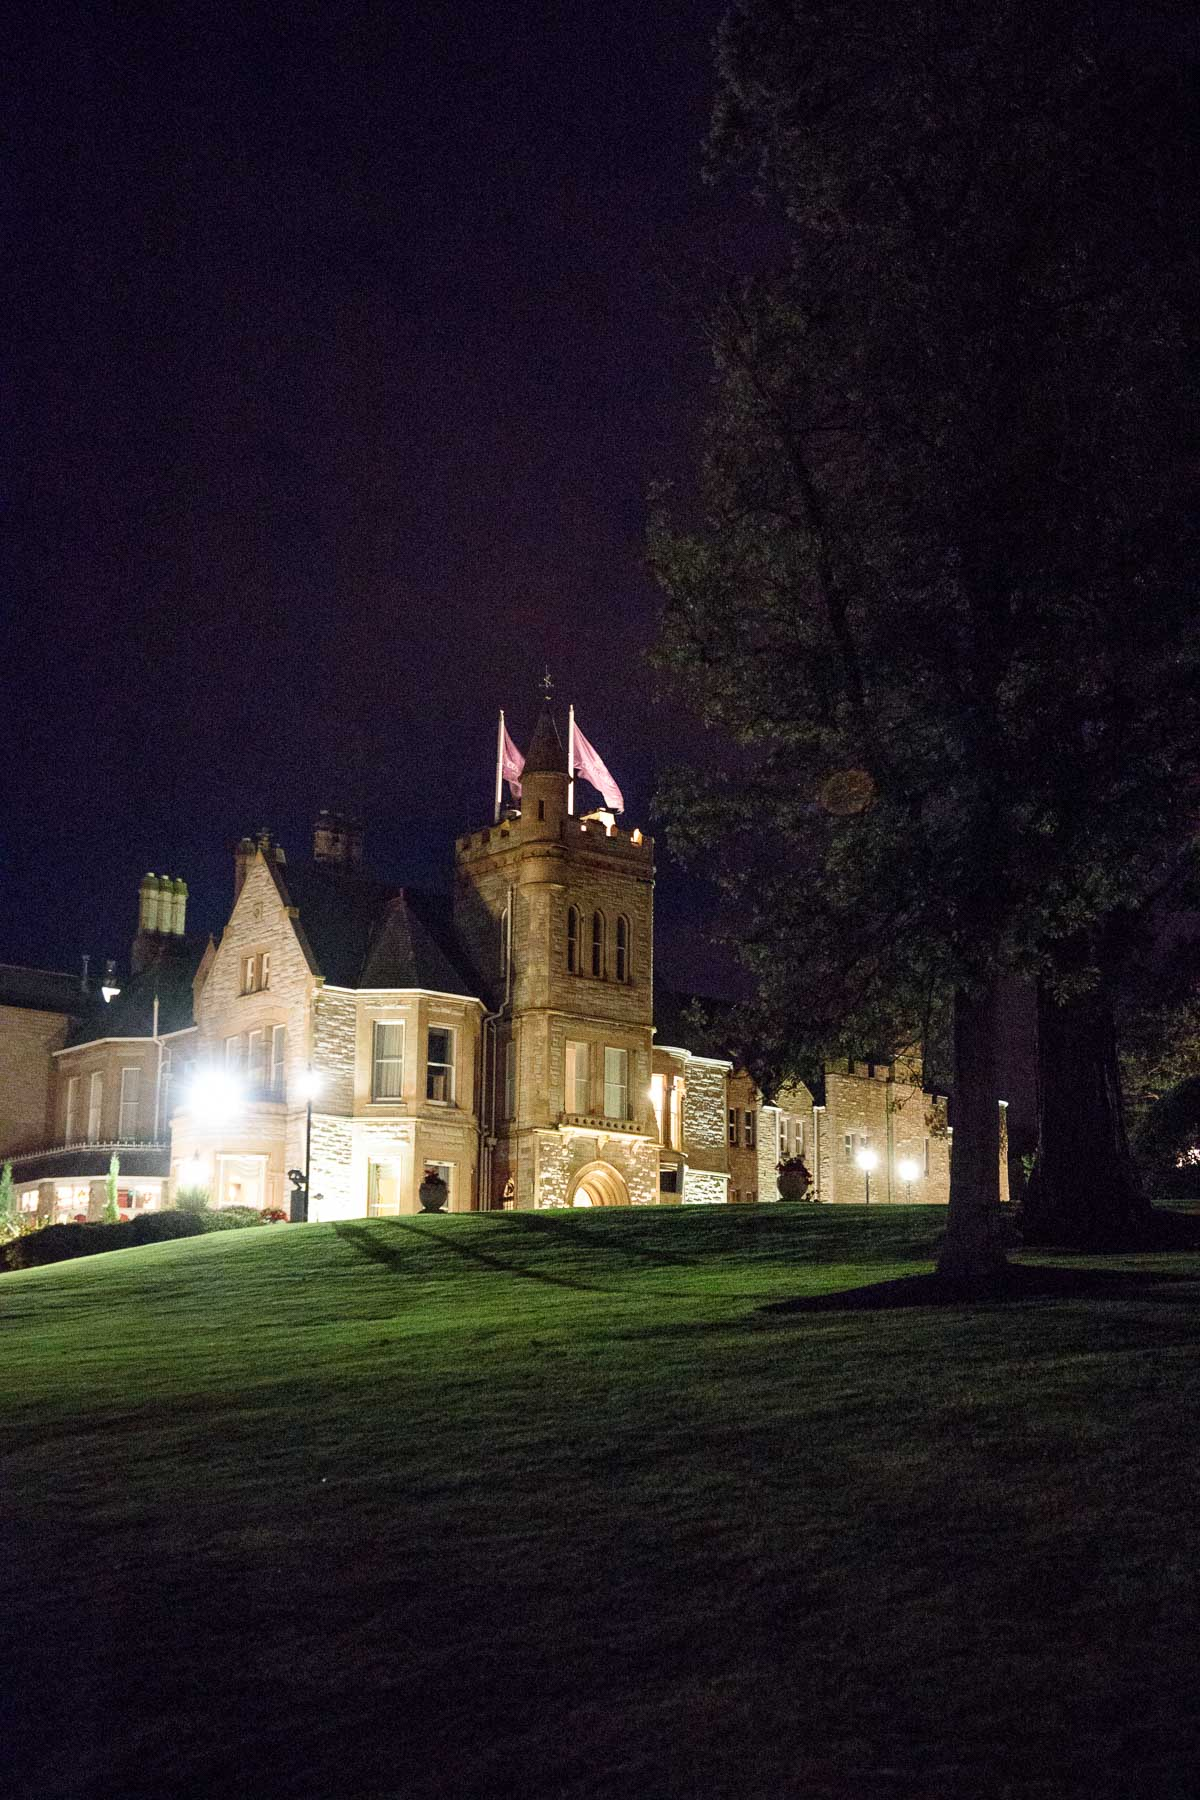 Night time view of Culloden Estate and Spa near Belfast, Northern Ireland.